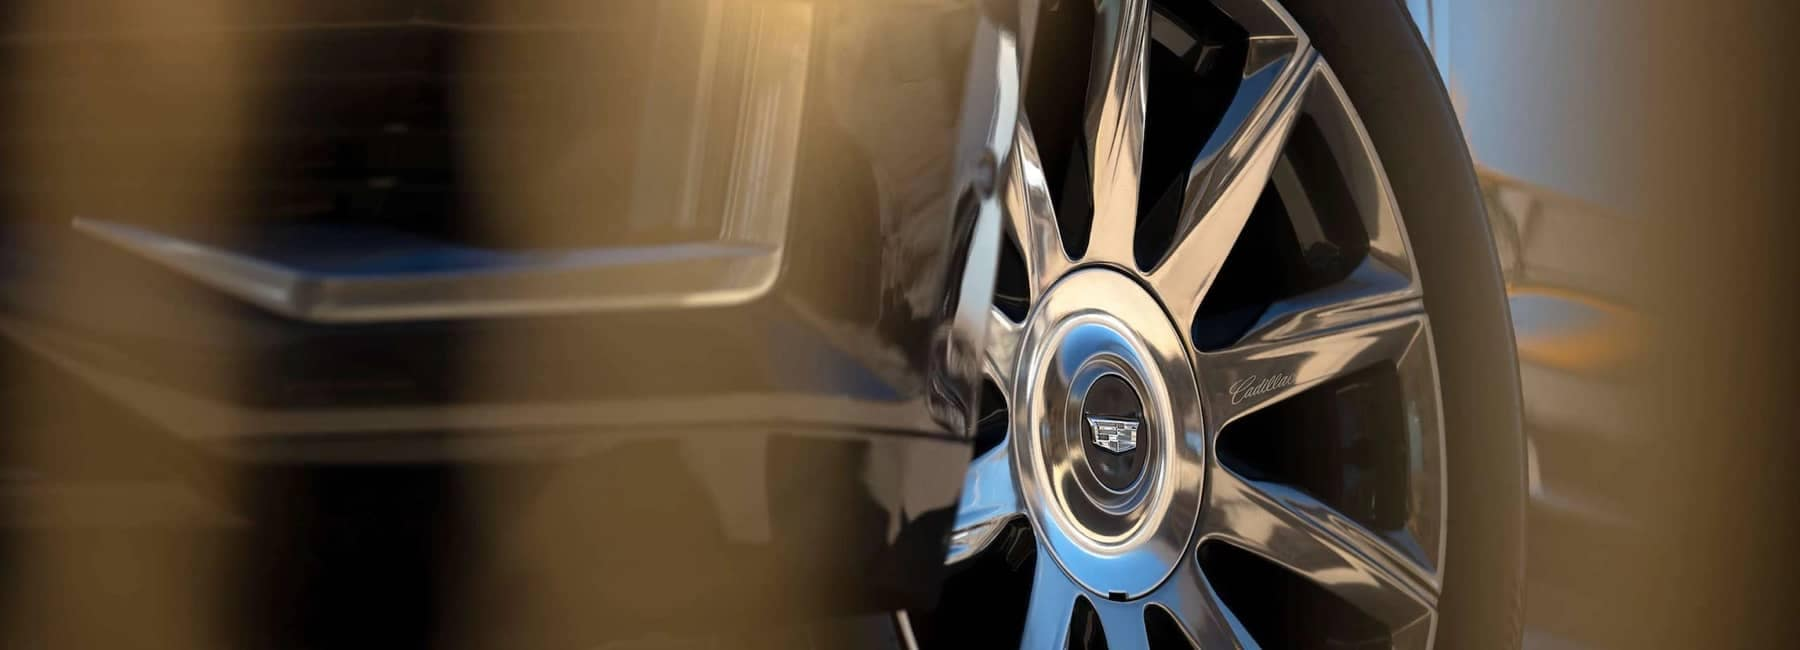 Cadillac Escalde Wheel